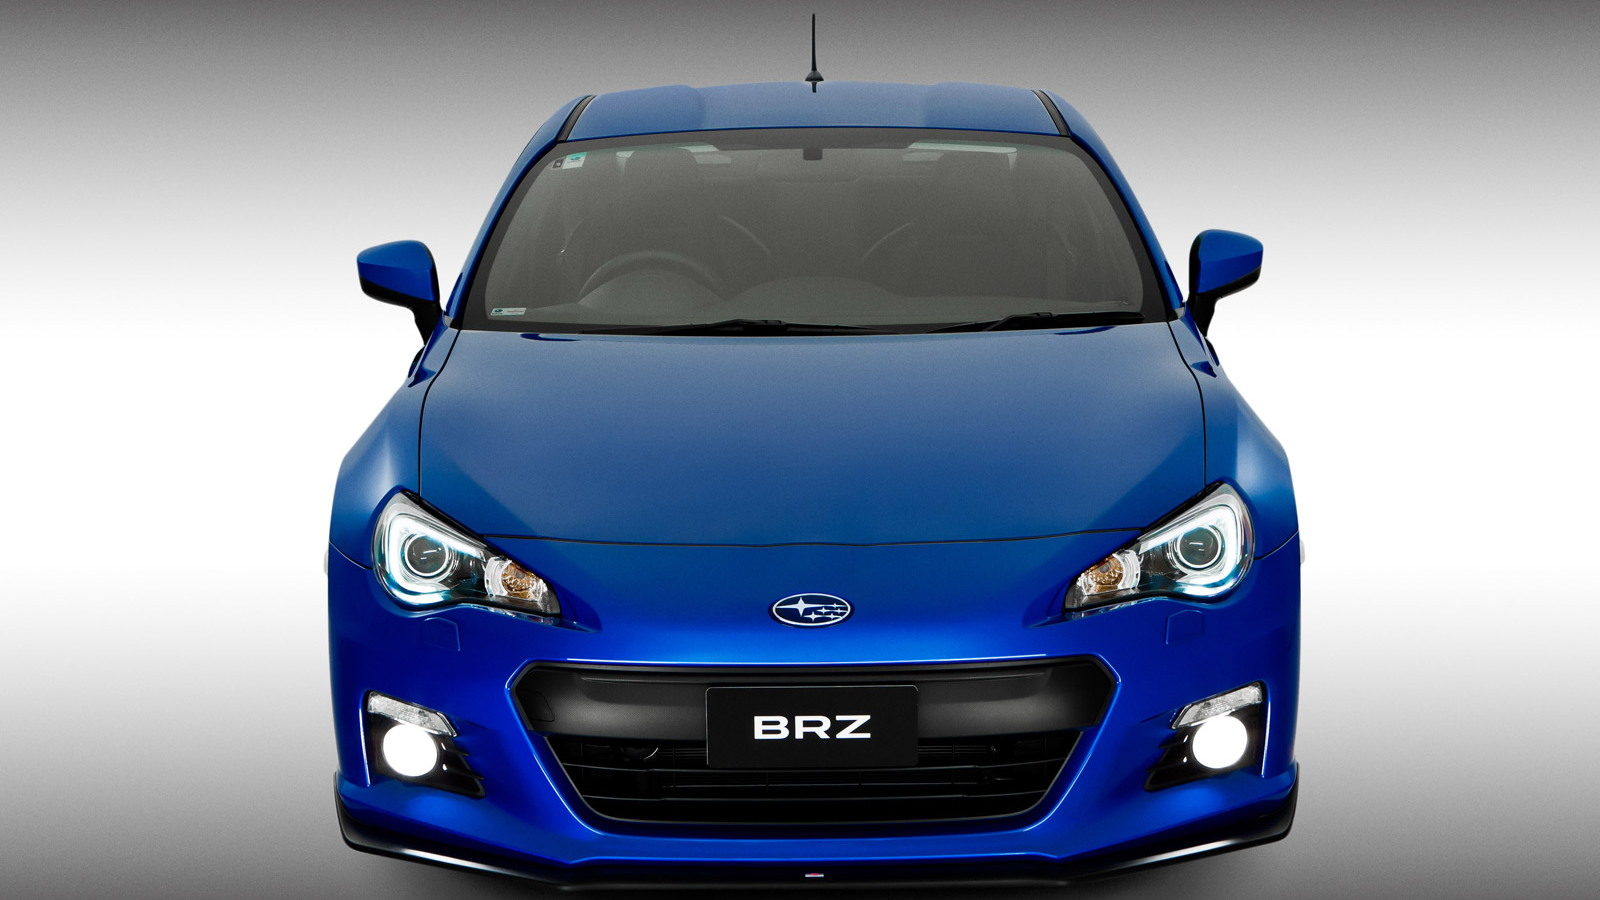 2013 Subaru BRZ fitted with STI upgrades